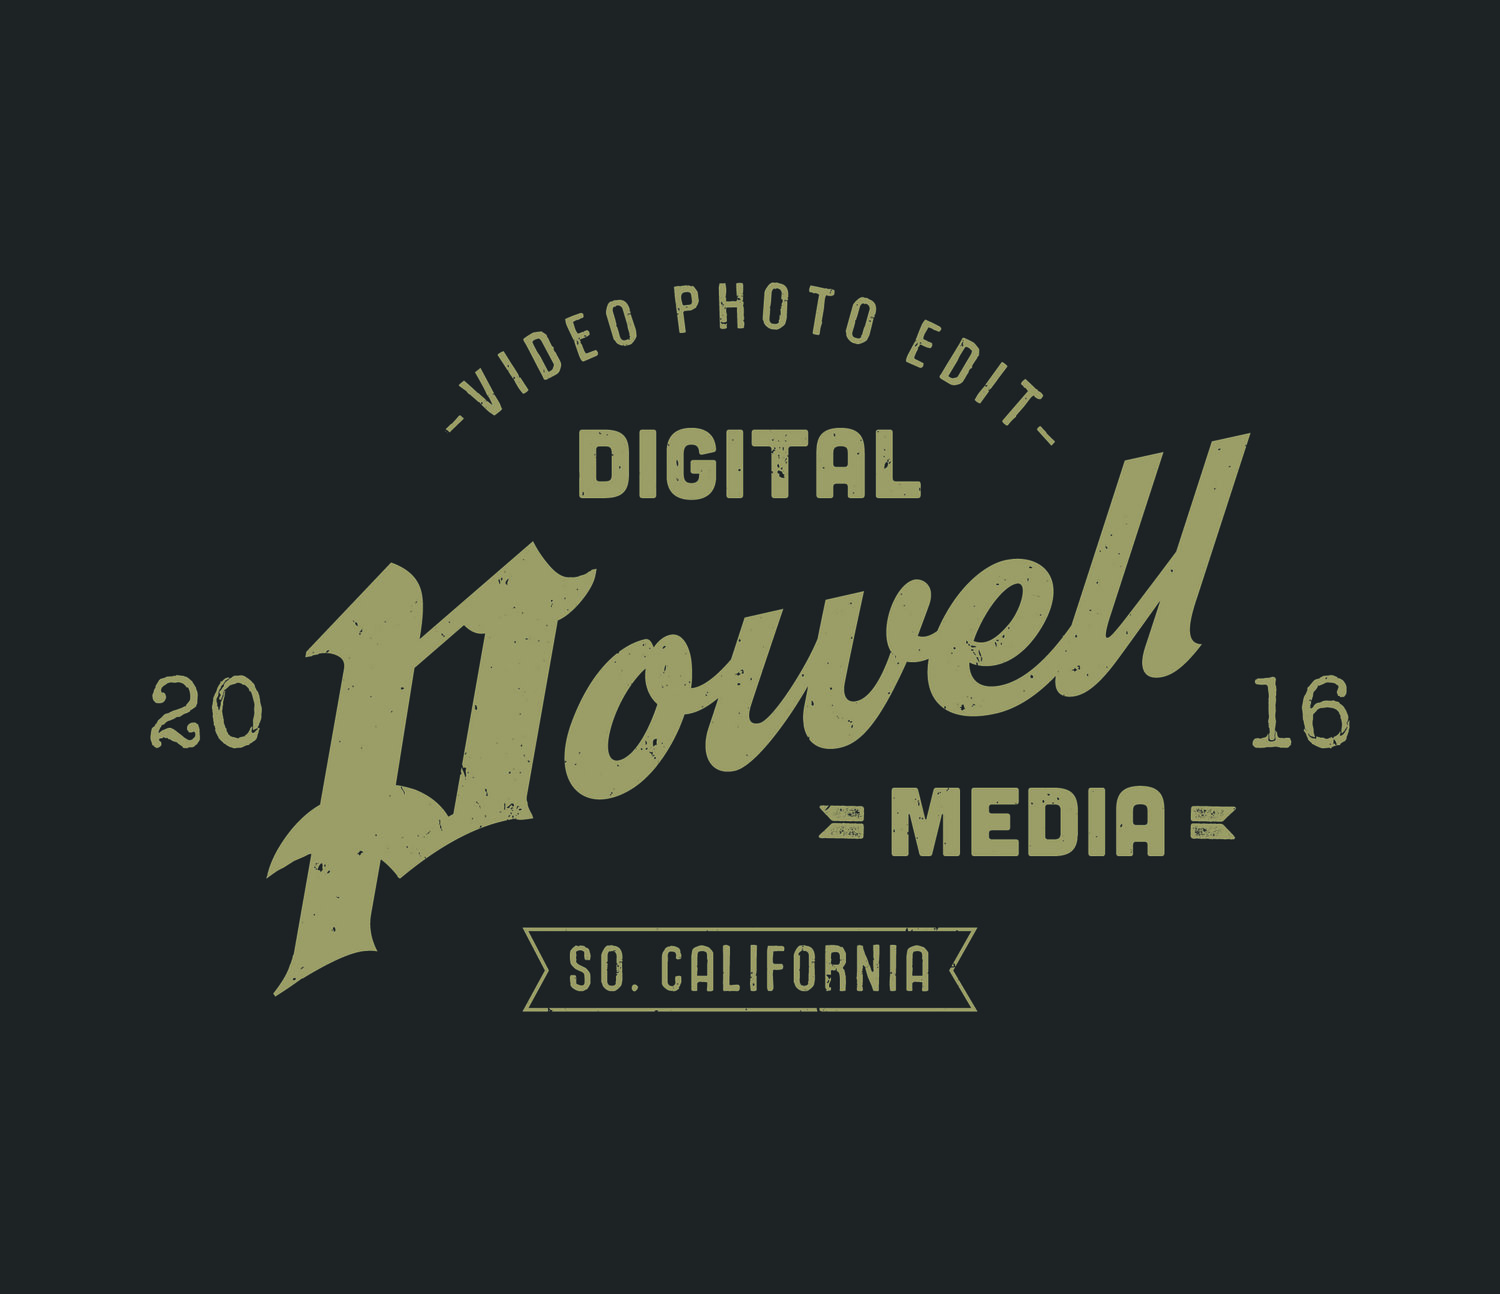 POWELL DIGITAL MEDIA